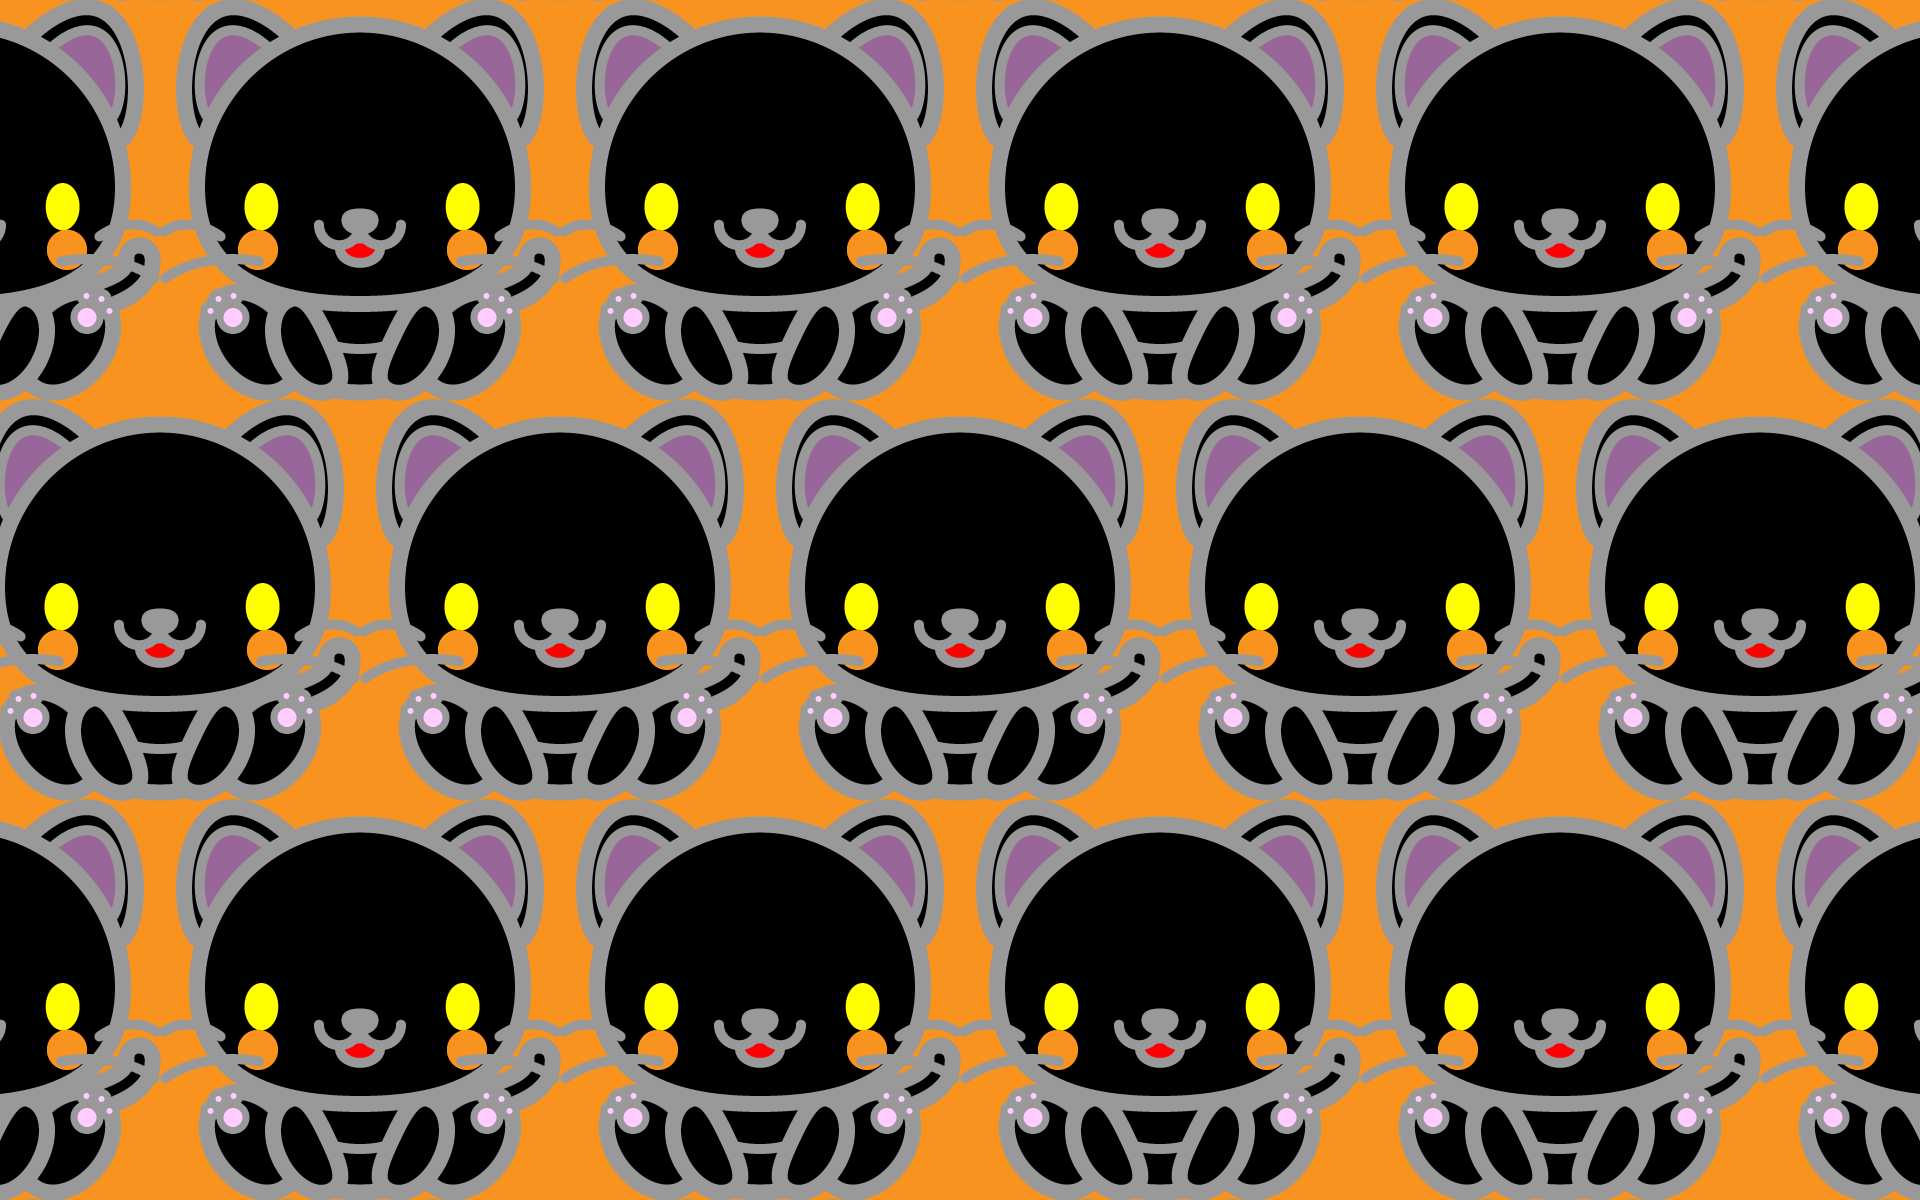 wallpaper3_sitblackcat-fiill-orange-pc